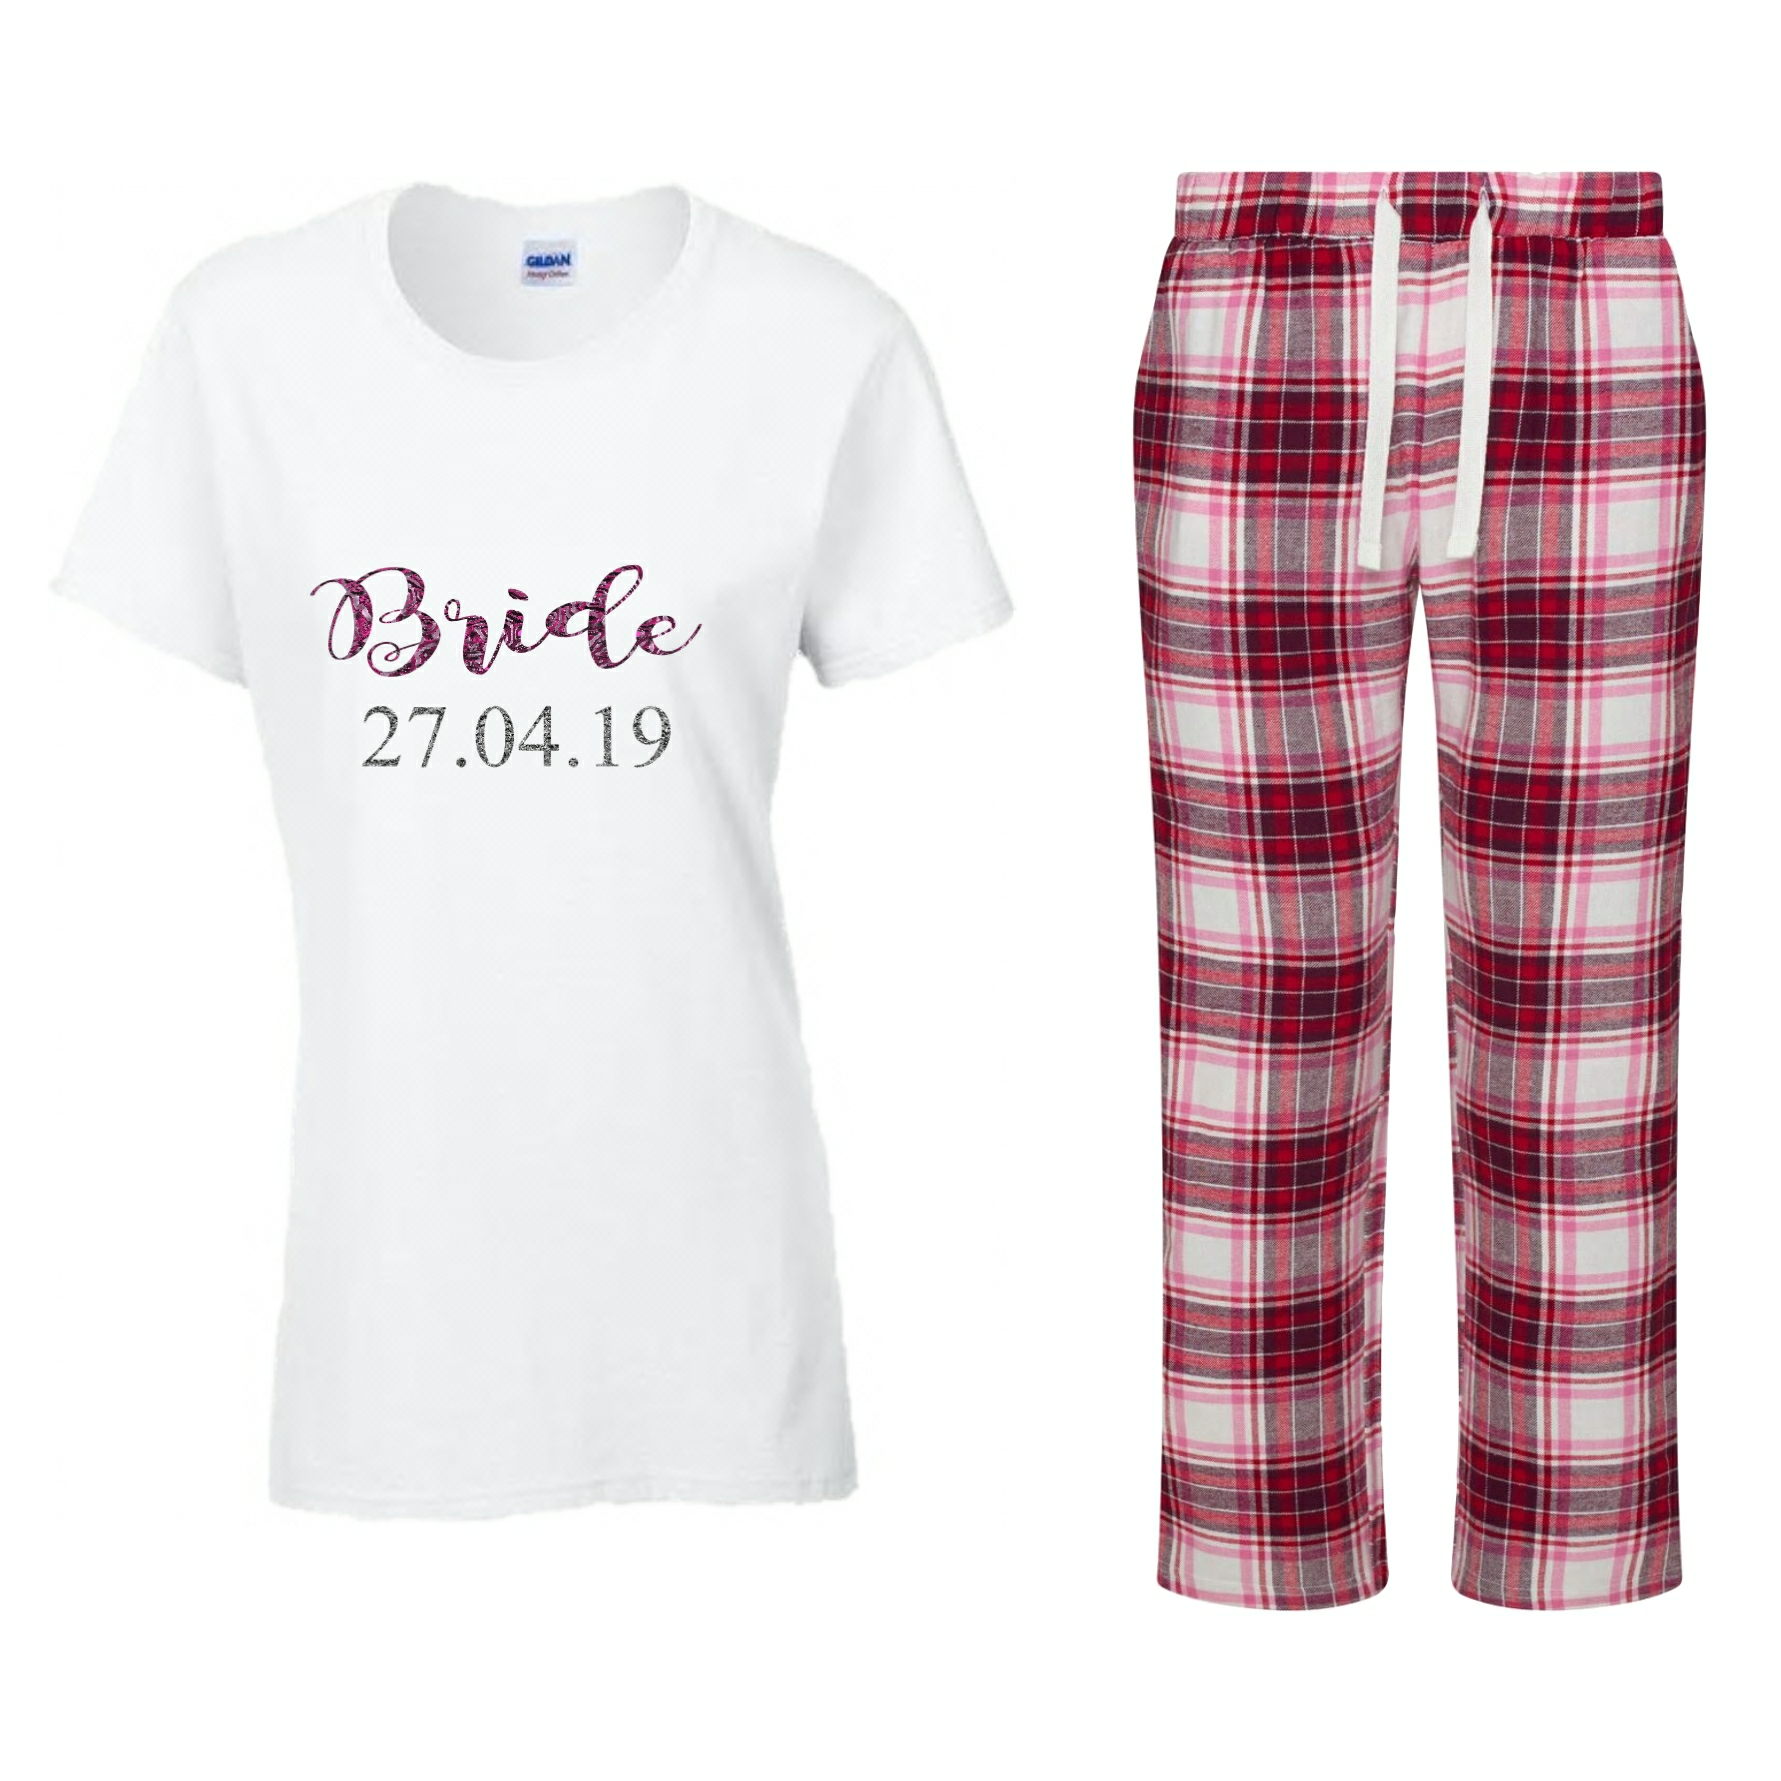 9e24f25225 Bride Pyjama Set. Personalised Wedding Pjs - Wedding Threads